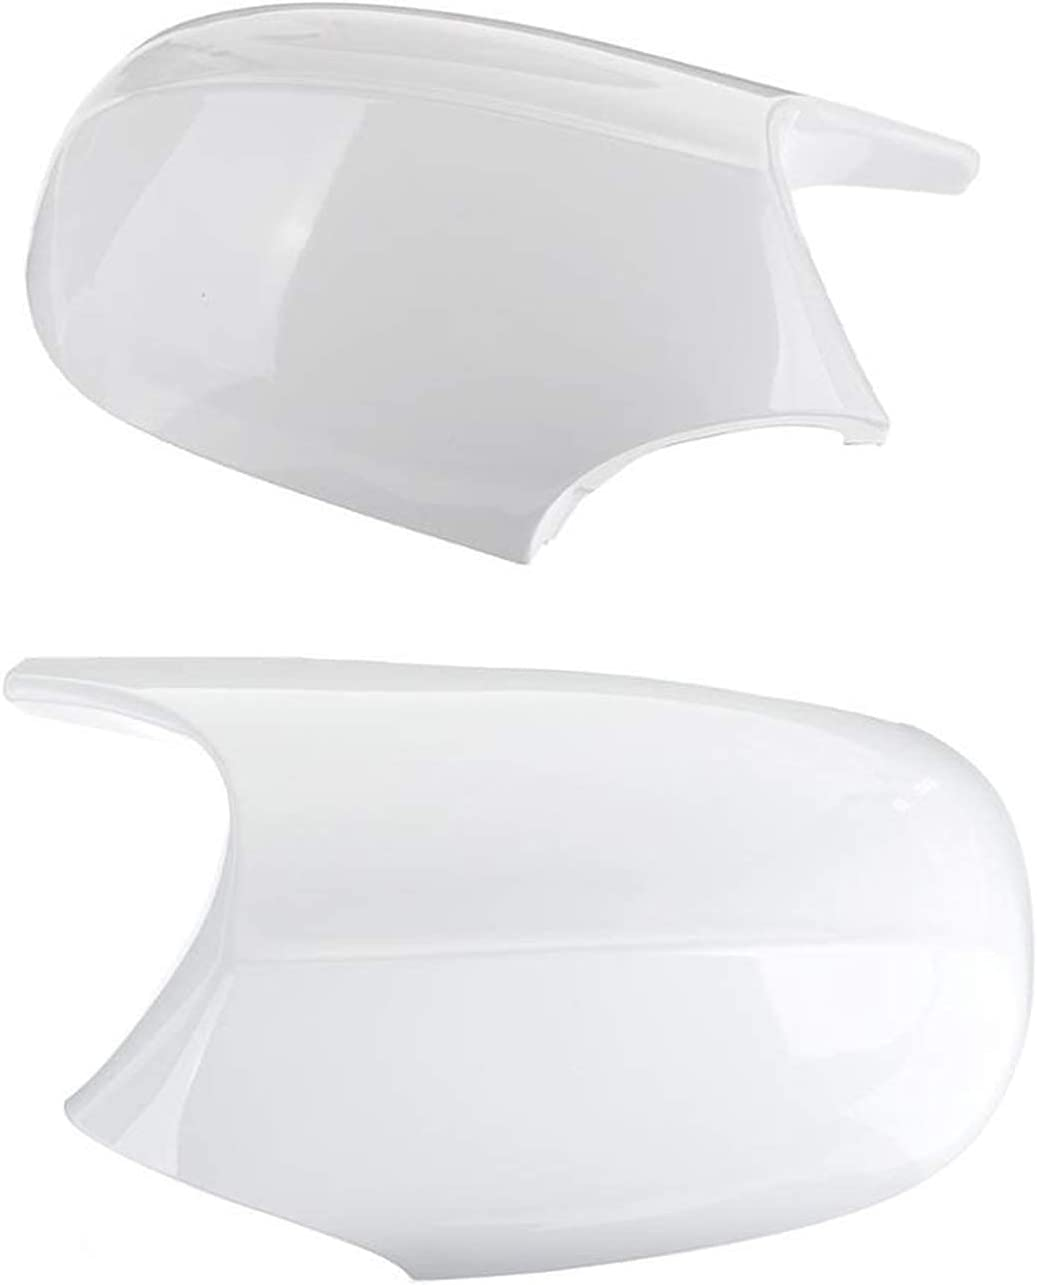 1 Pair Carbon Fiber Door Mirror 4 years warranty Covers Free shipping New E91 for E90 E92 Caps BMW